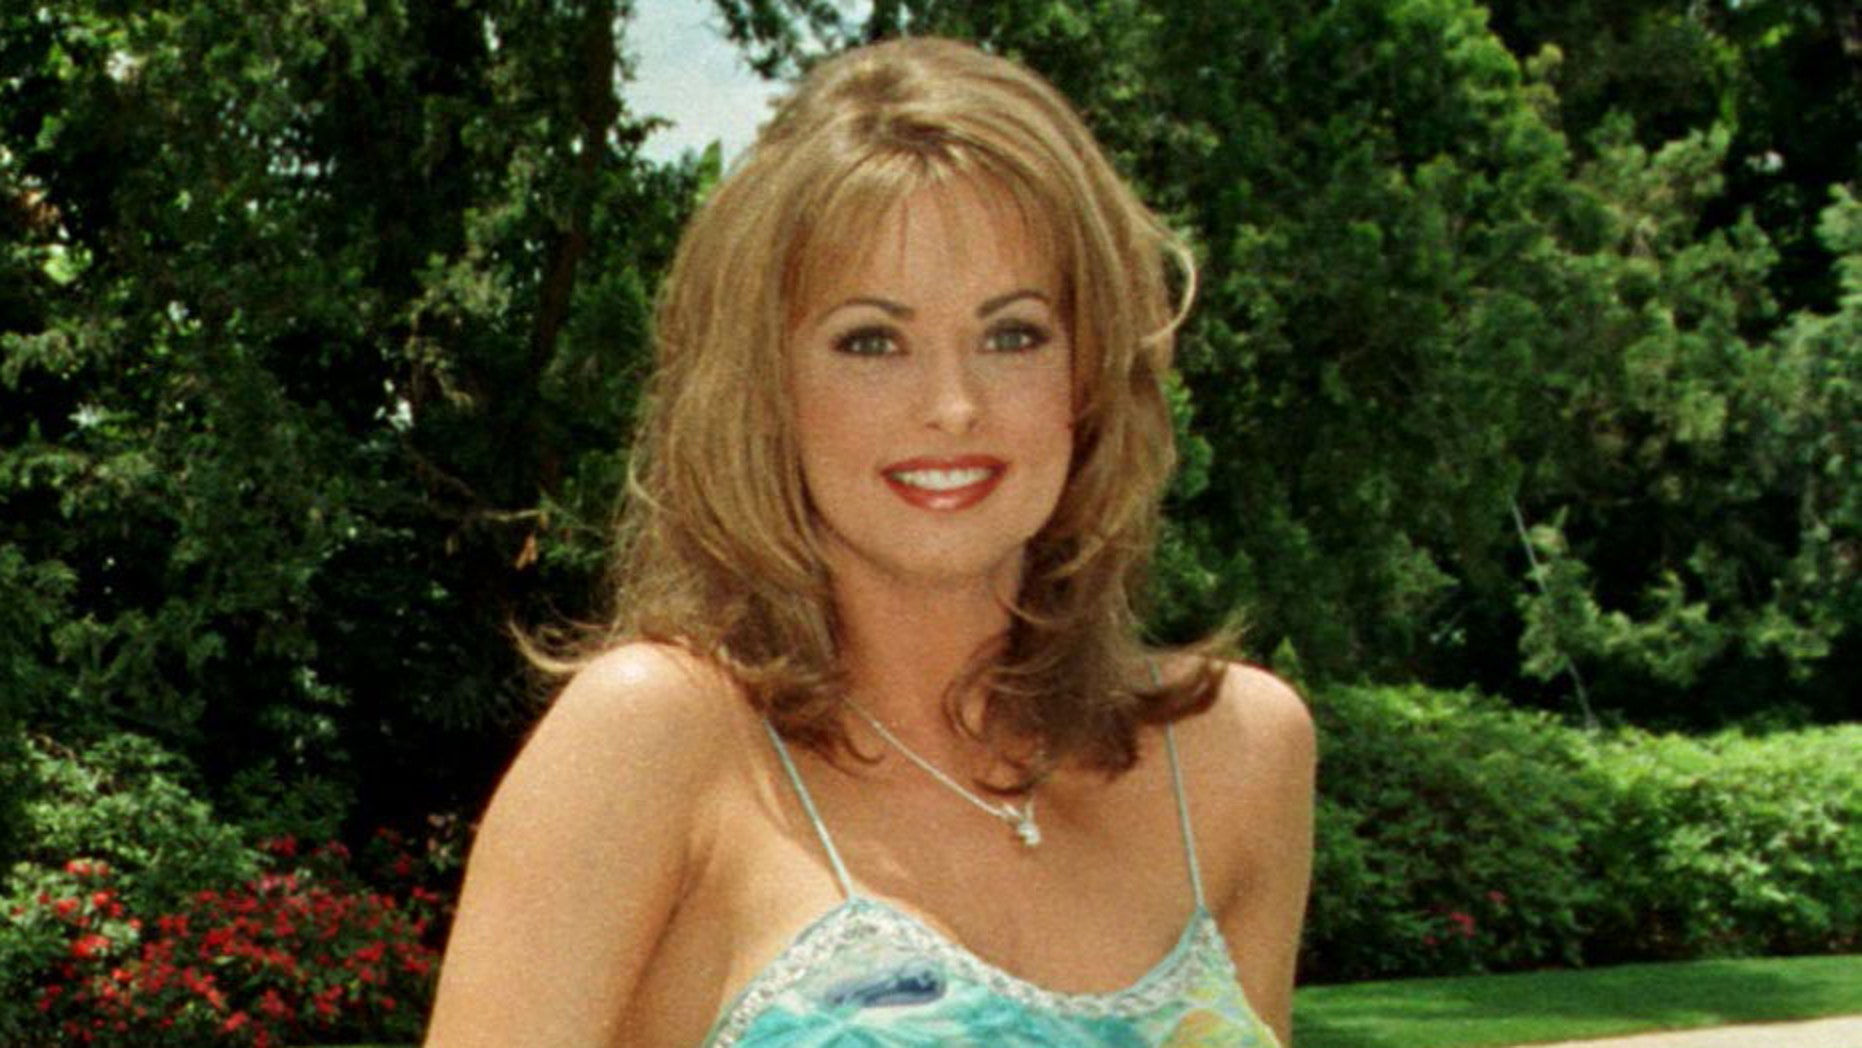 Karen McDougal poses after being named Playmate of the Year in 1998.